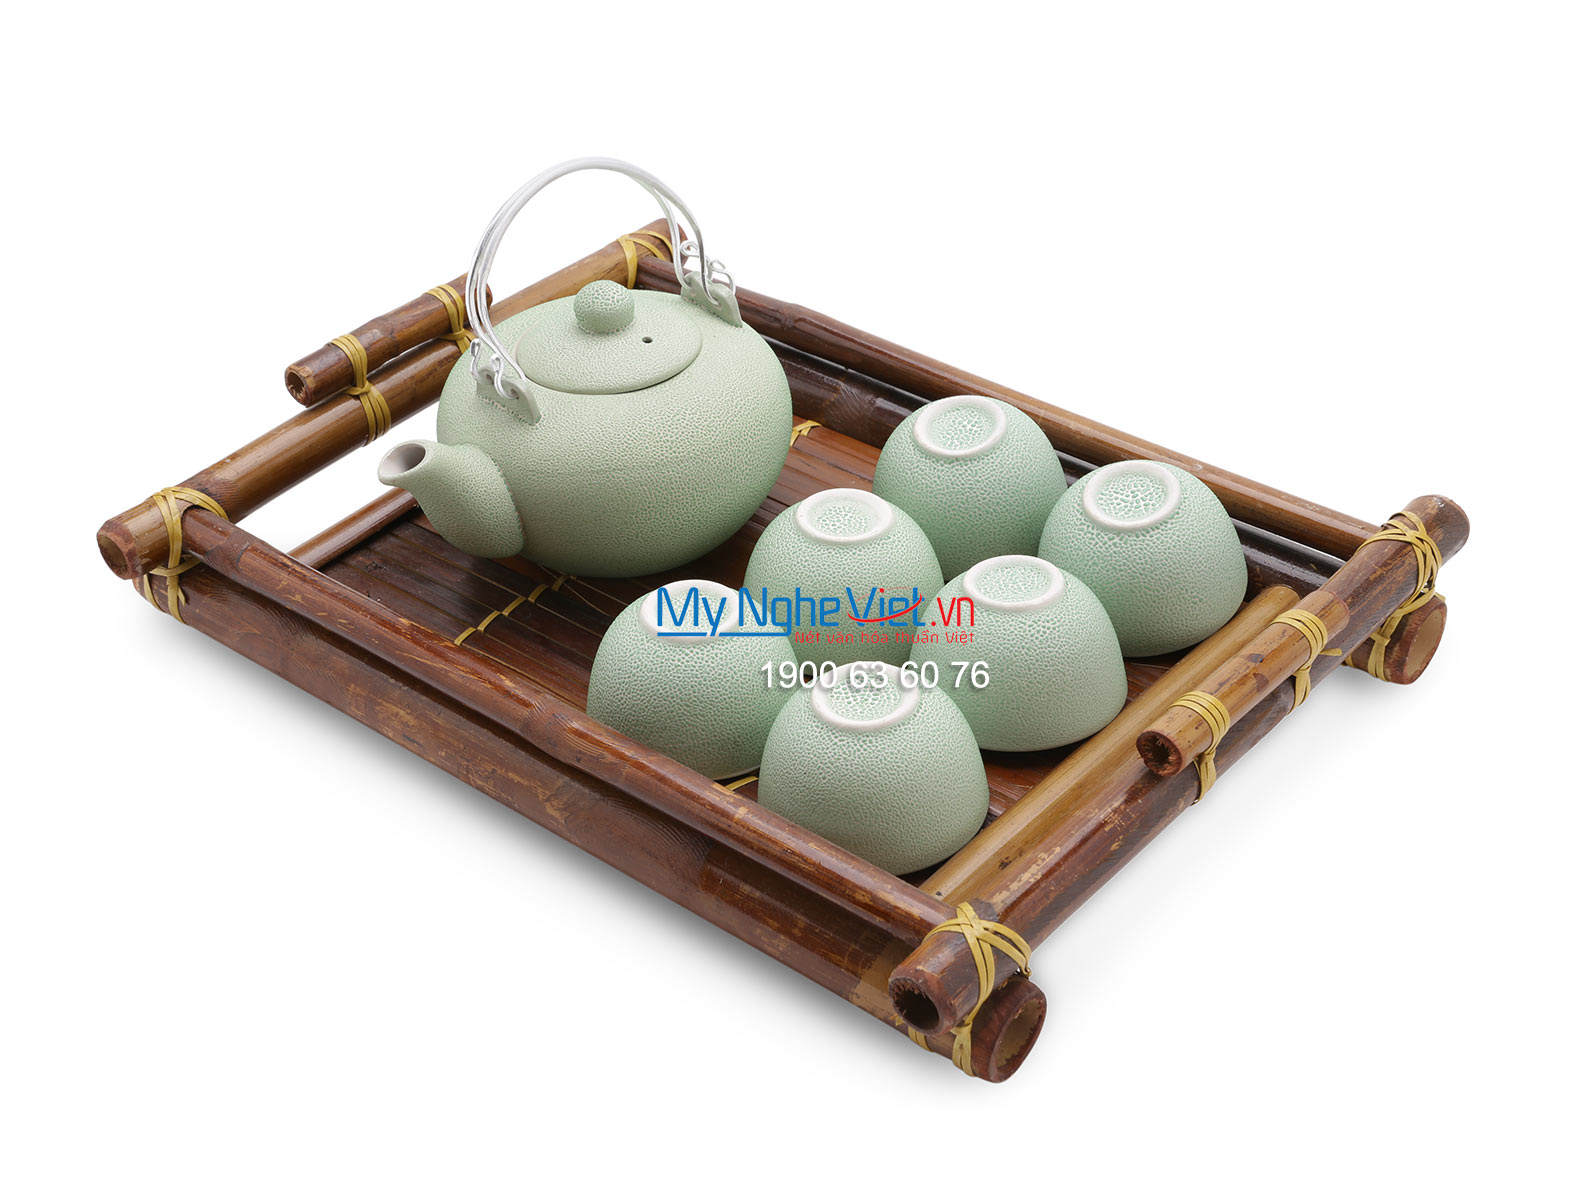 Ceramic tea set green MNV-BT151/2